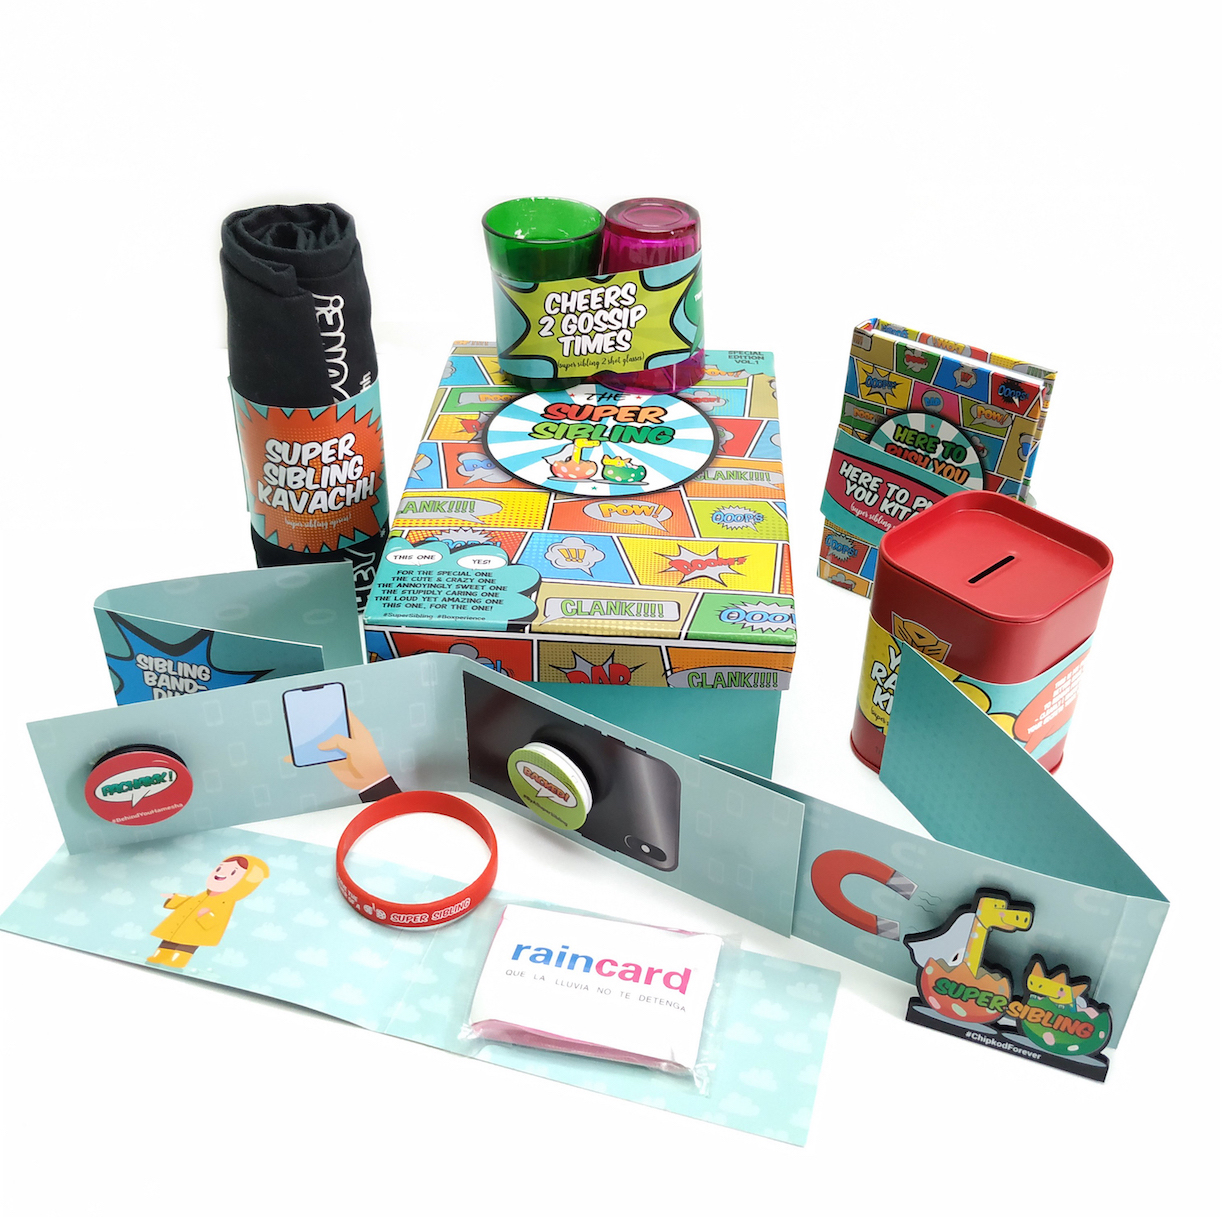 gifts for super siblings